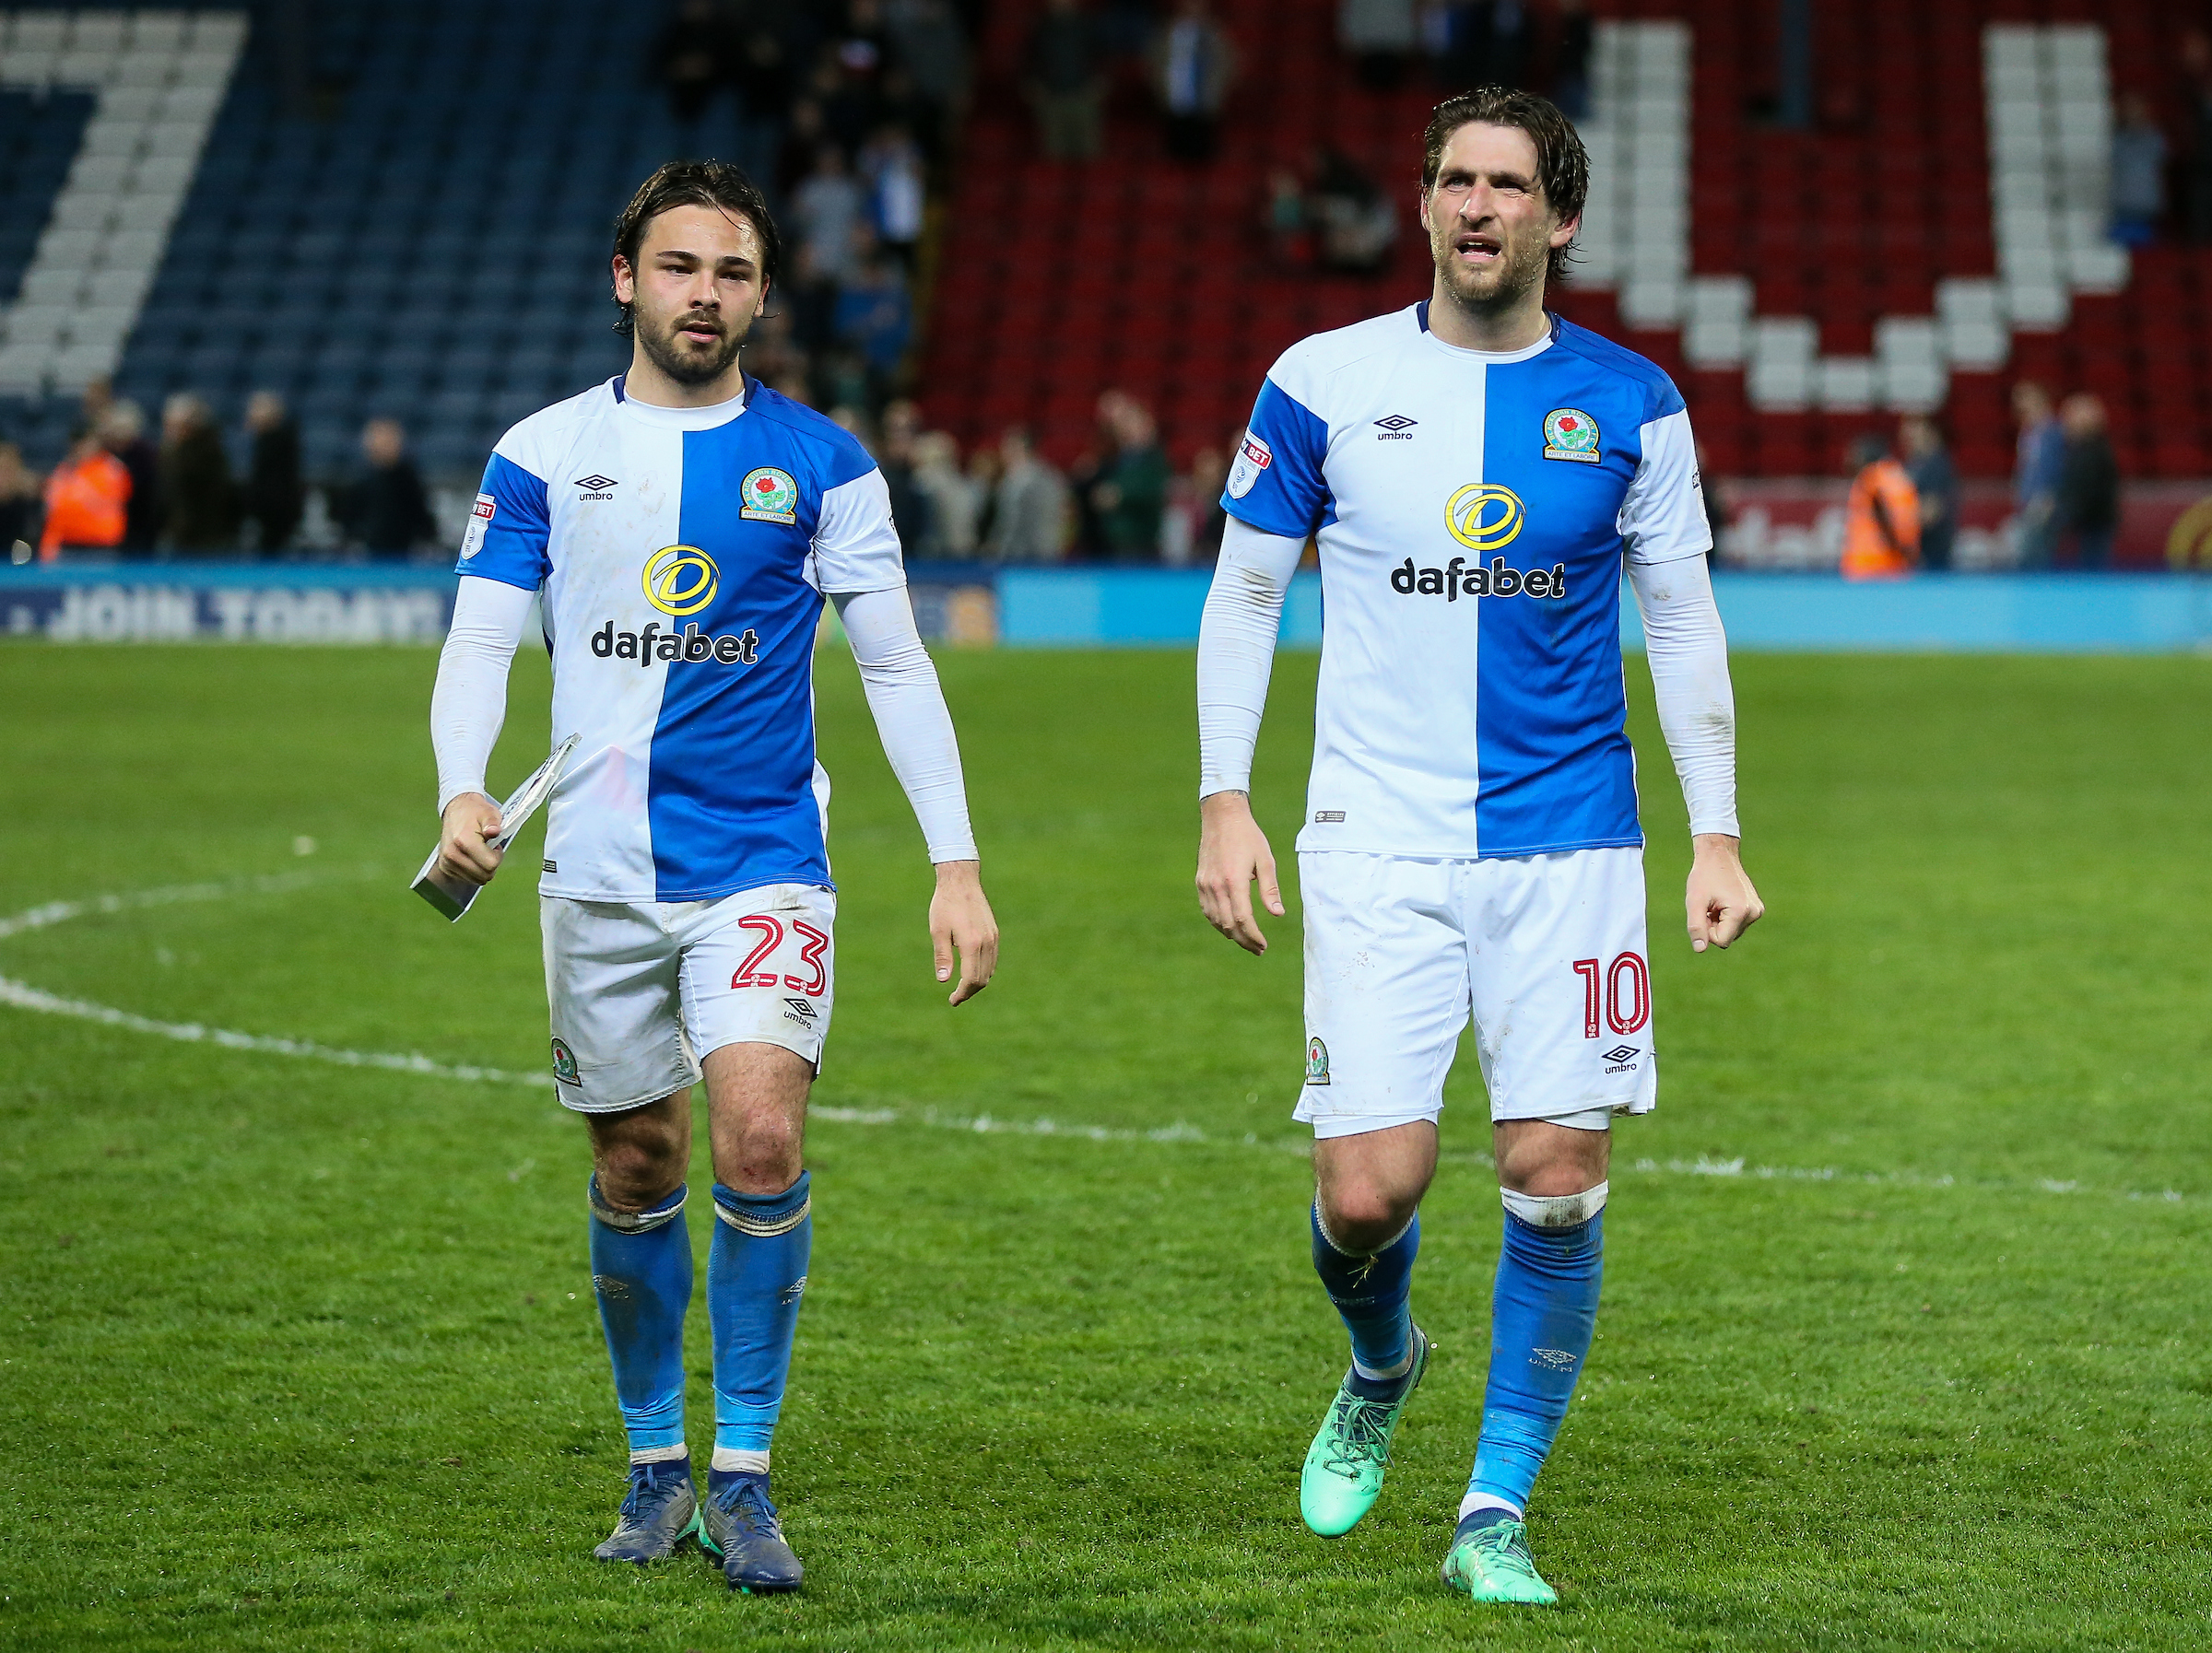 Bradley Dack and Danny Graham both netted in the win over Peterborough United